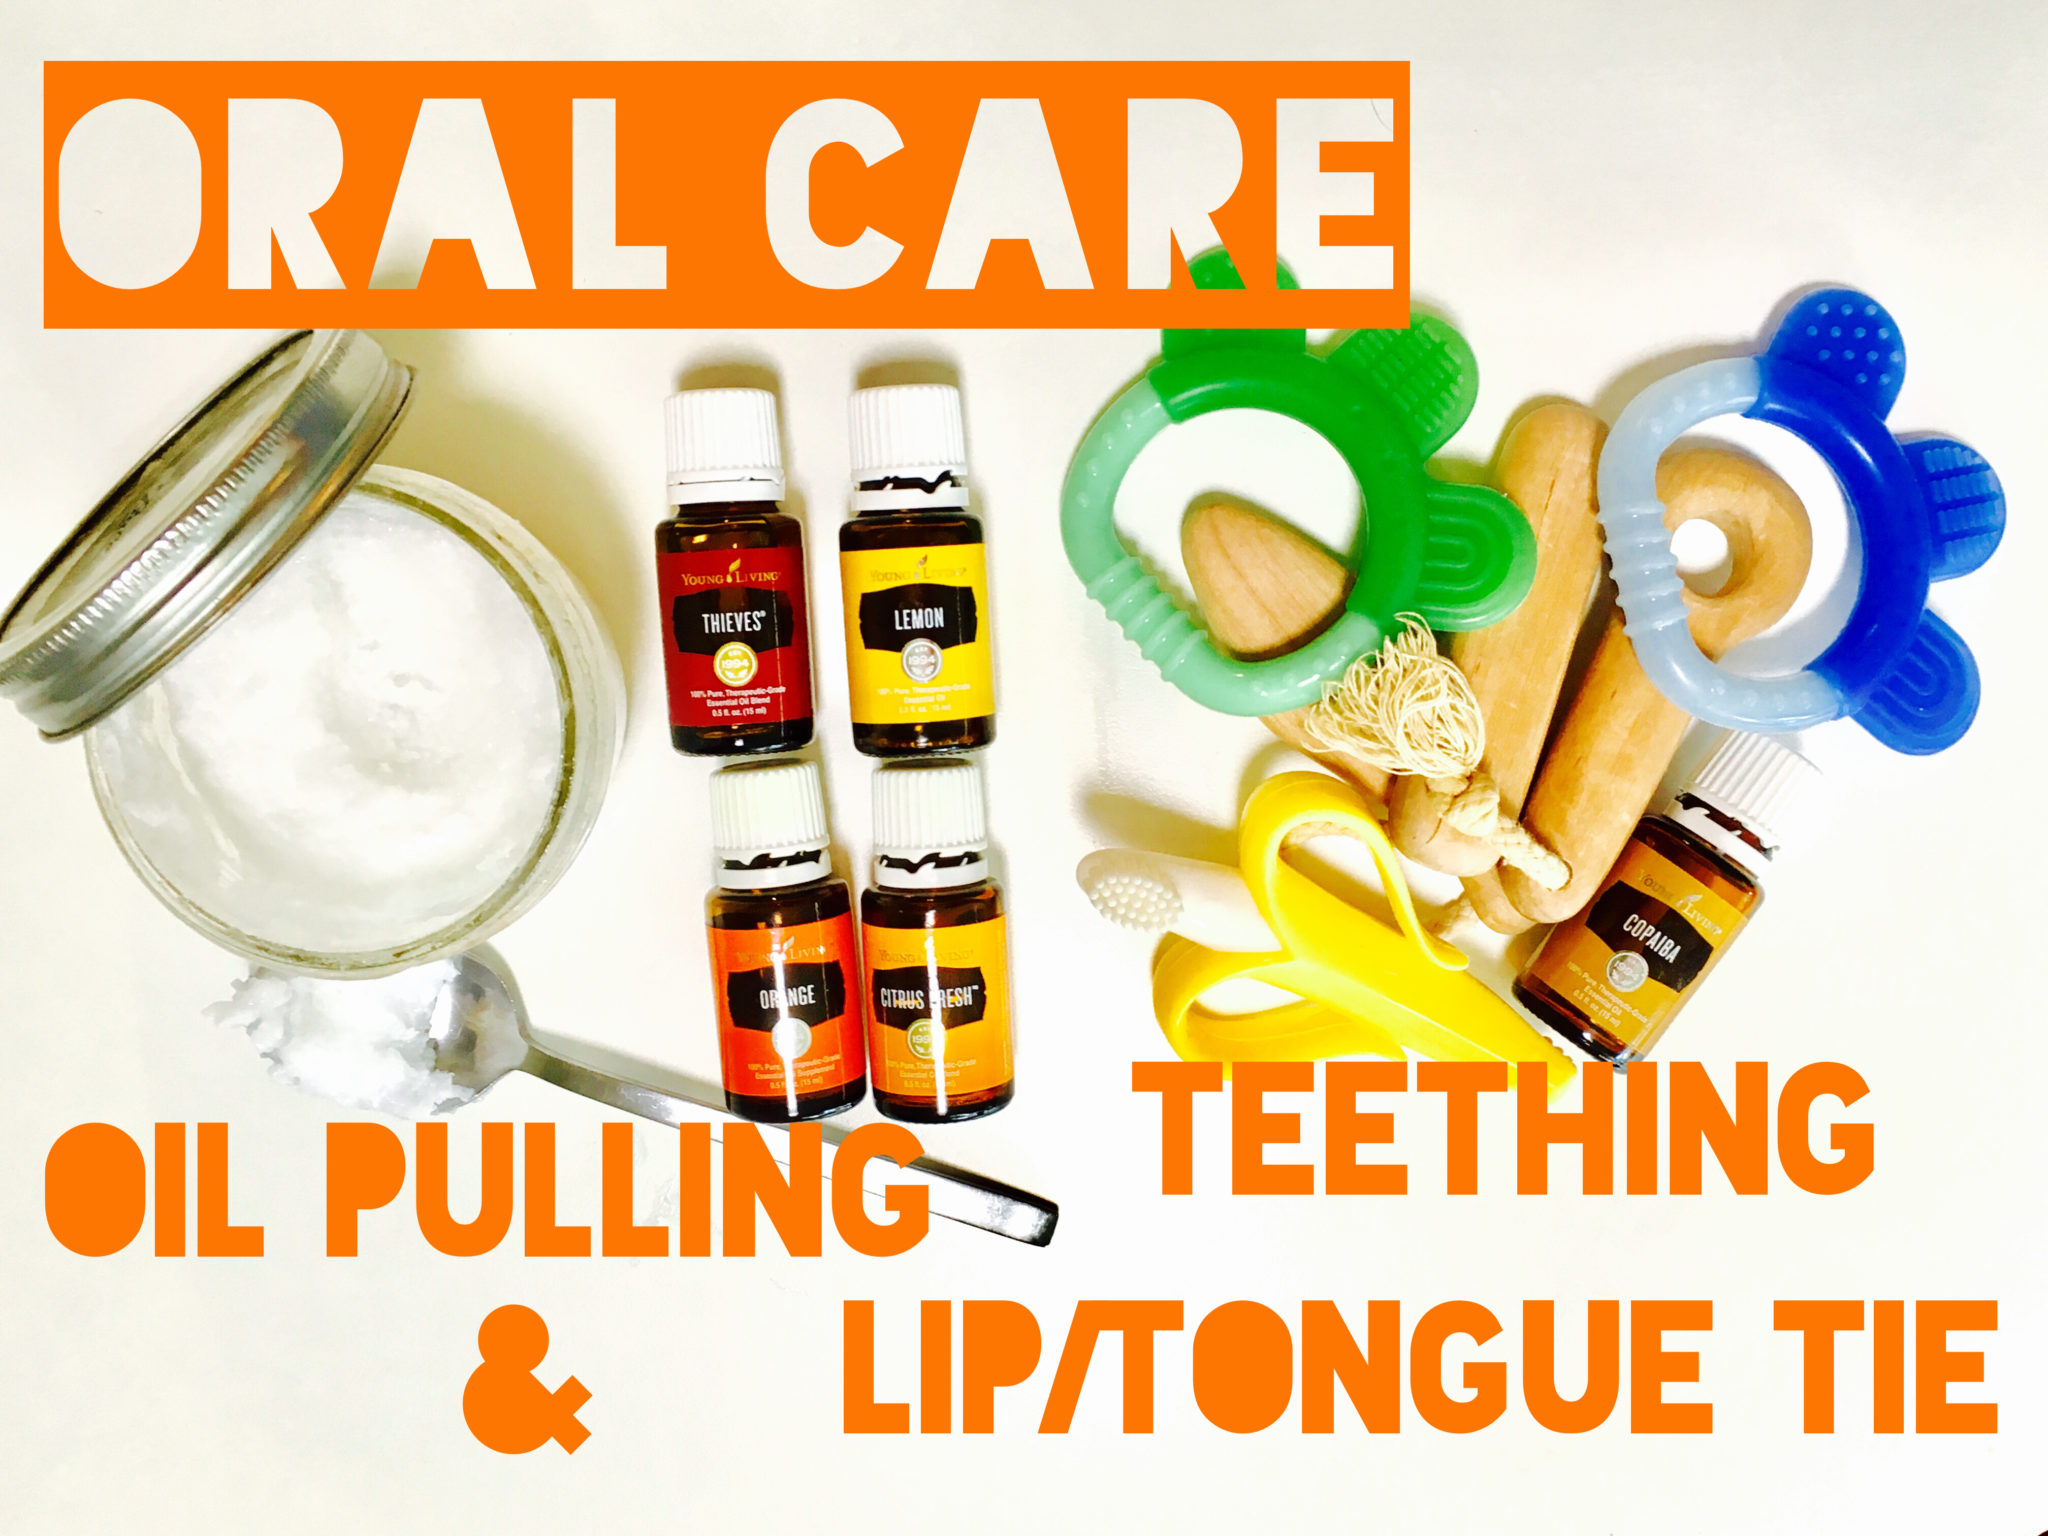 Oral Care Oil Pulling Teething Liptongue Tie Swell Living